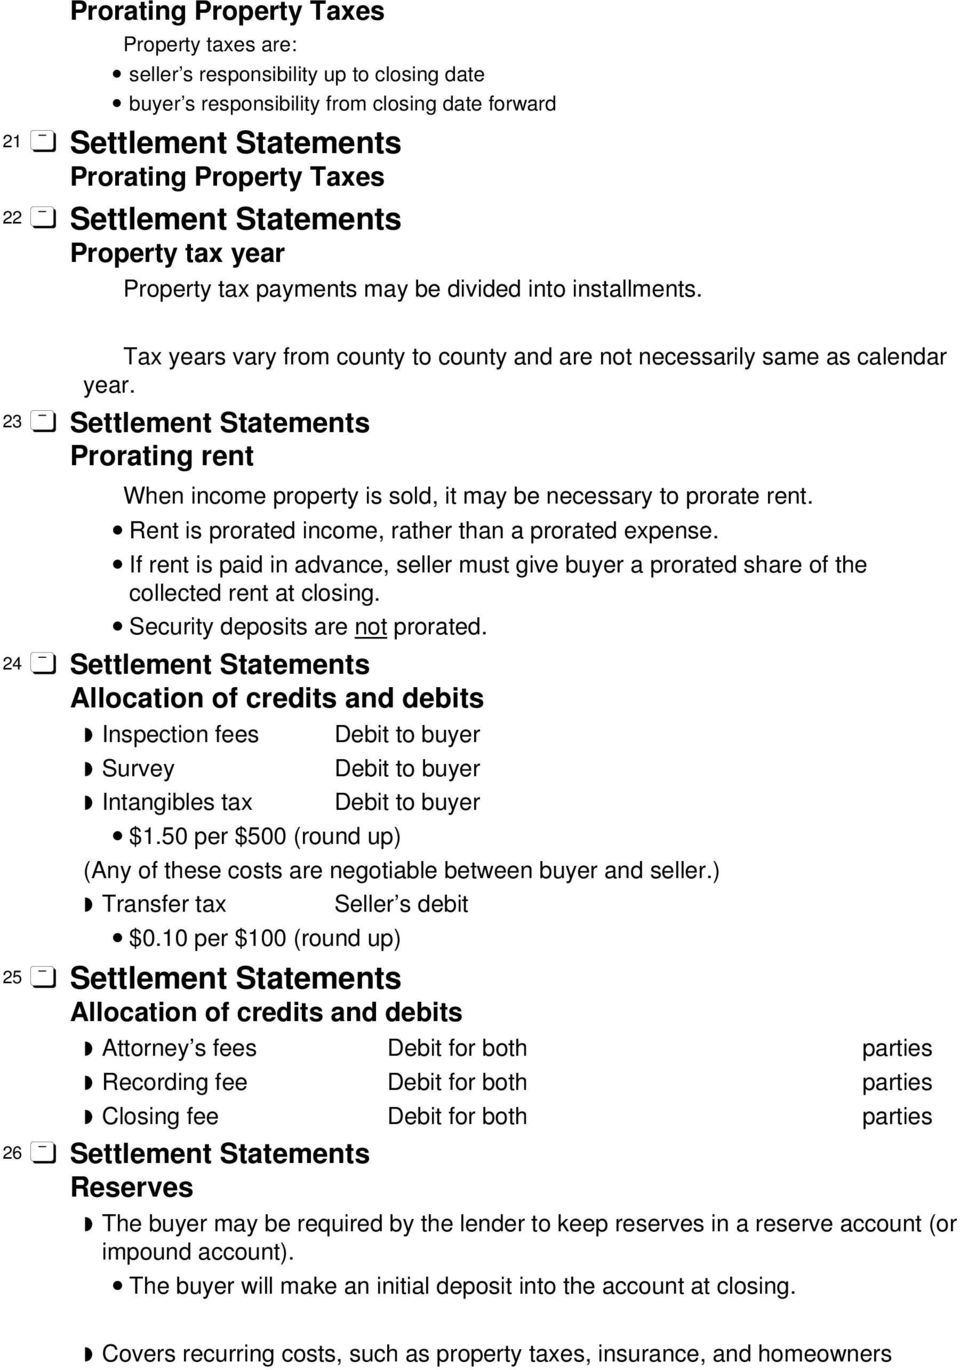 23 Settlement Statements Prorating rent When income property is sold, it may be necessary to prorate rent. Rent is prorated income, rather than a prorated expense.